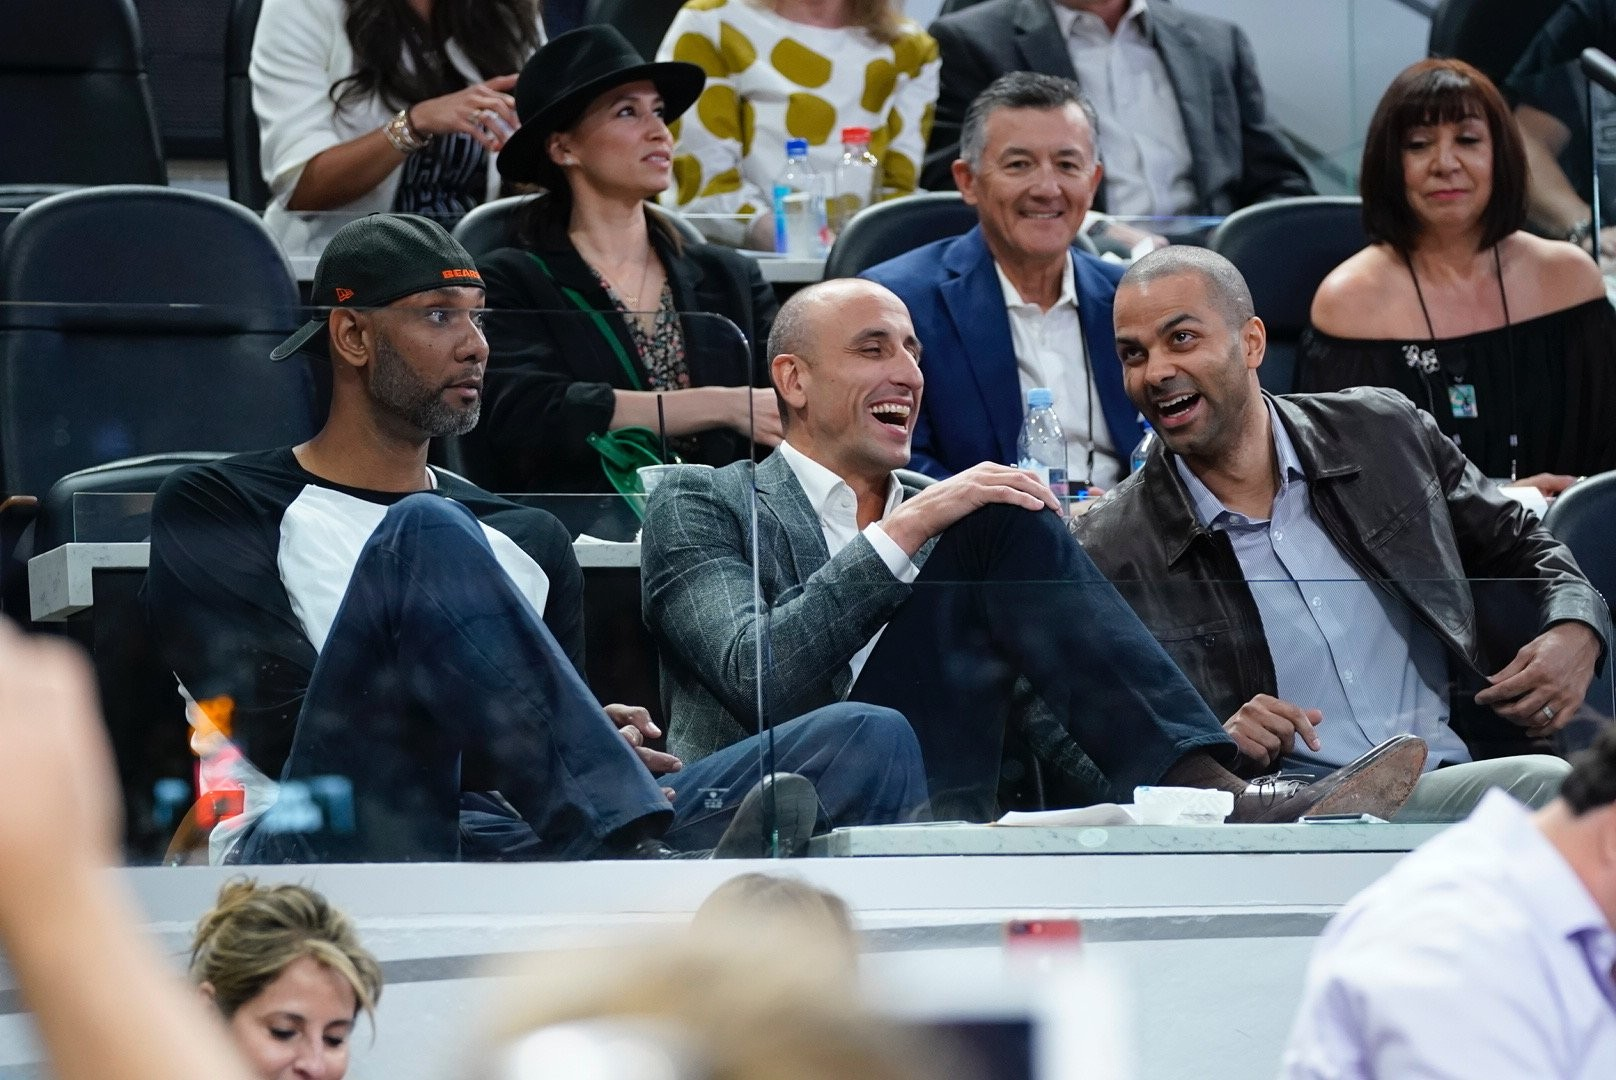 3d38e5b4f68 click to enlarge The Spurs' big three share a laugh before Manu Ginobili's  jersey retirement ceremony. -